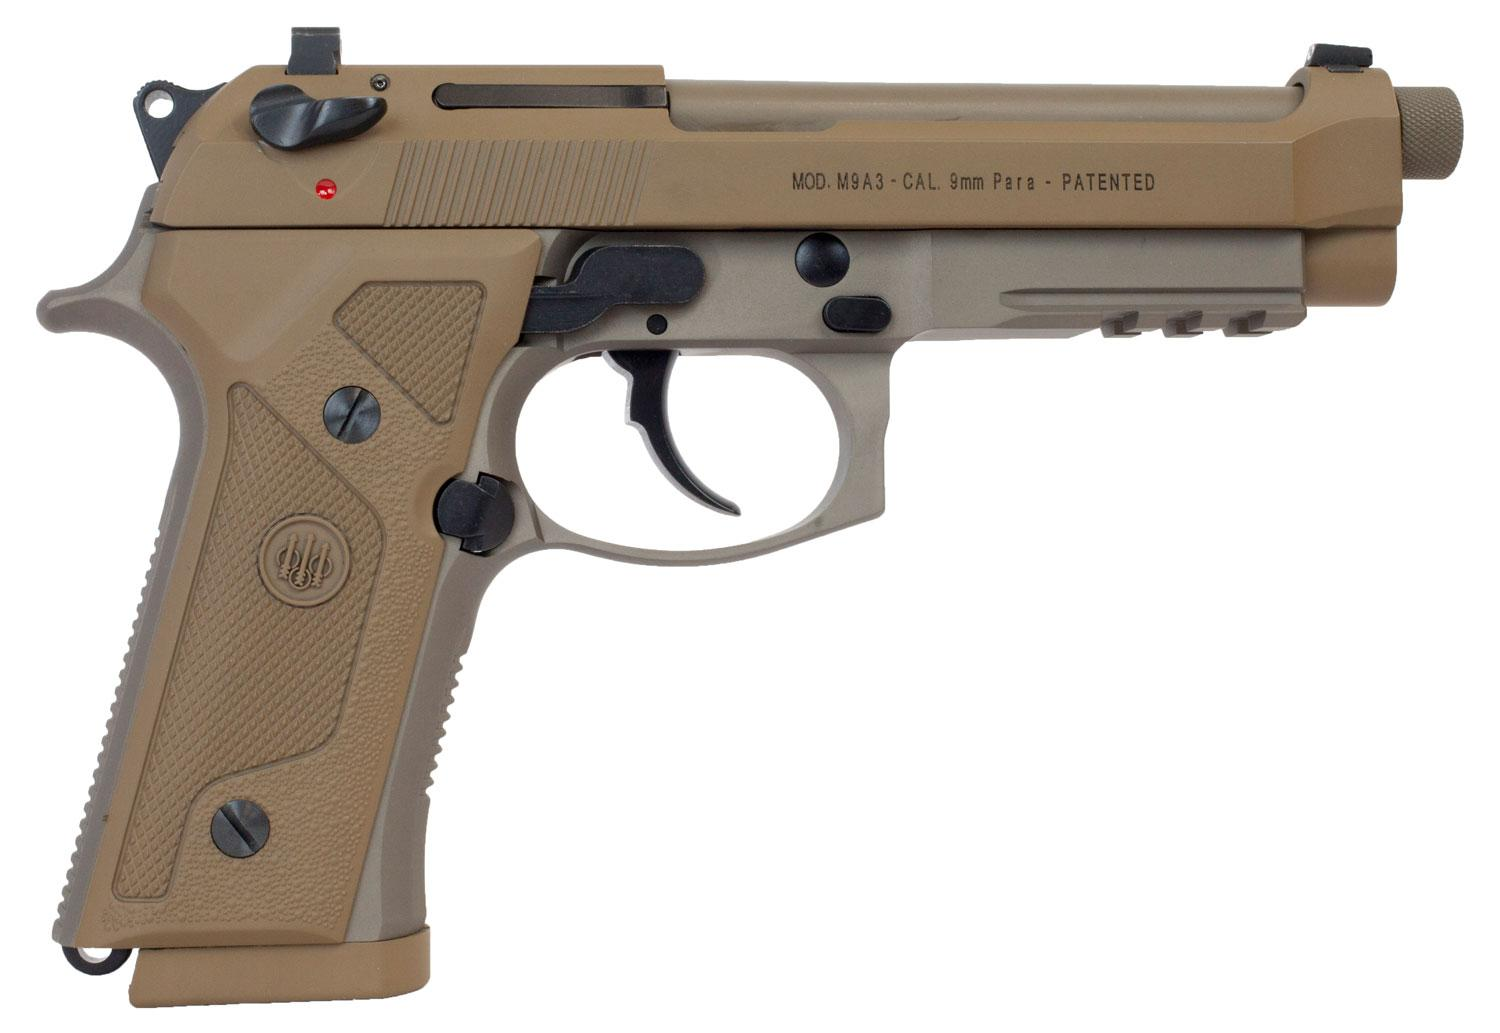 Beretta Usa J92m9a3gm M9 Italy Type G Single/Double 9mm Luger 5